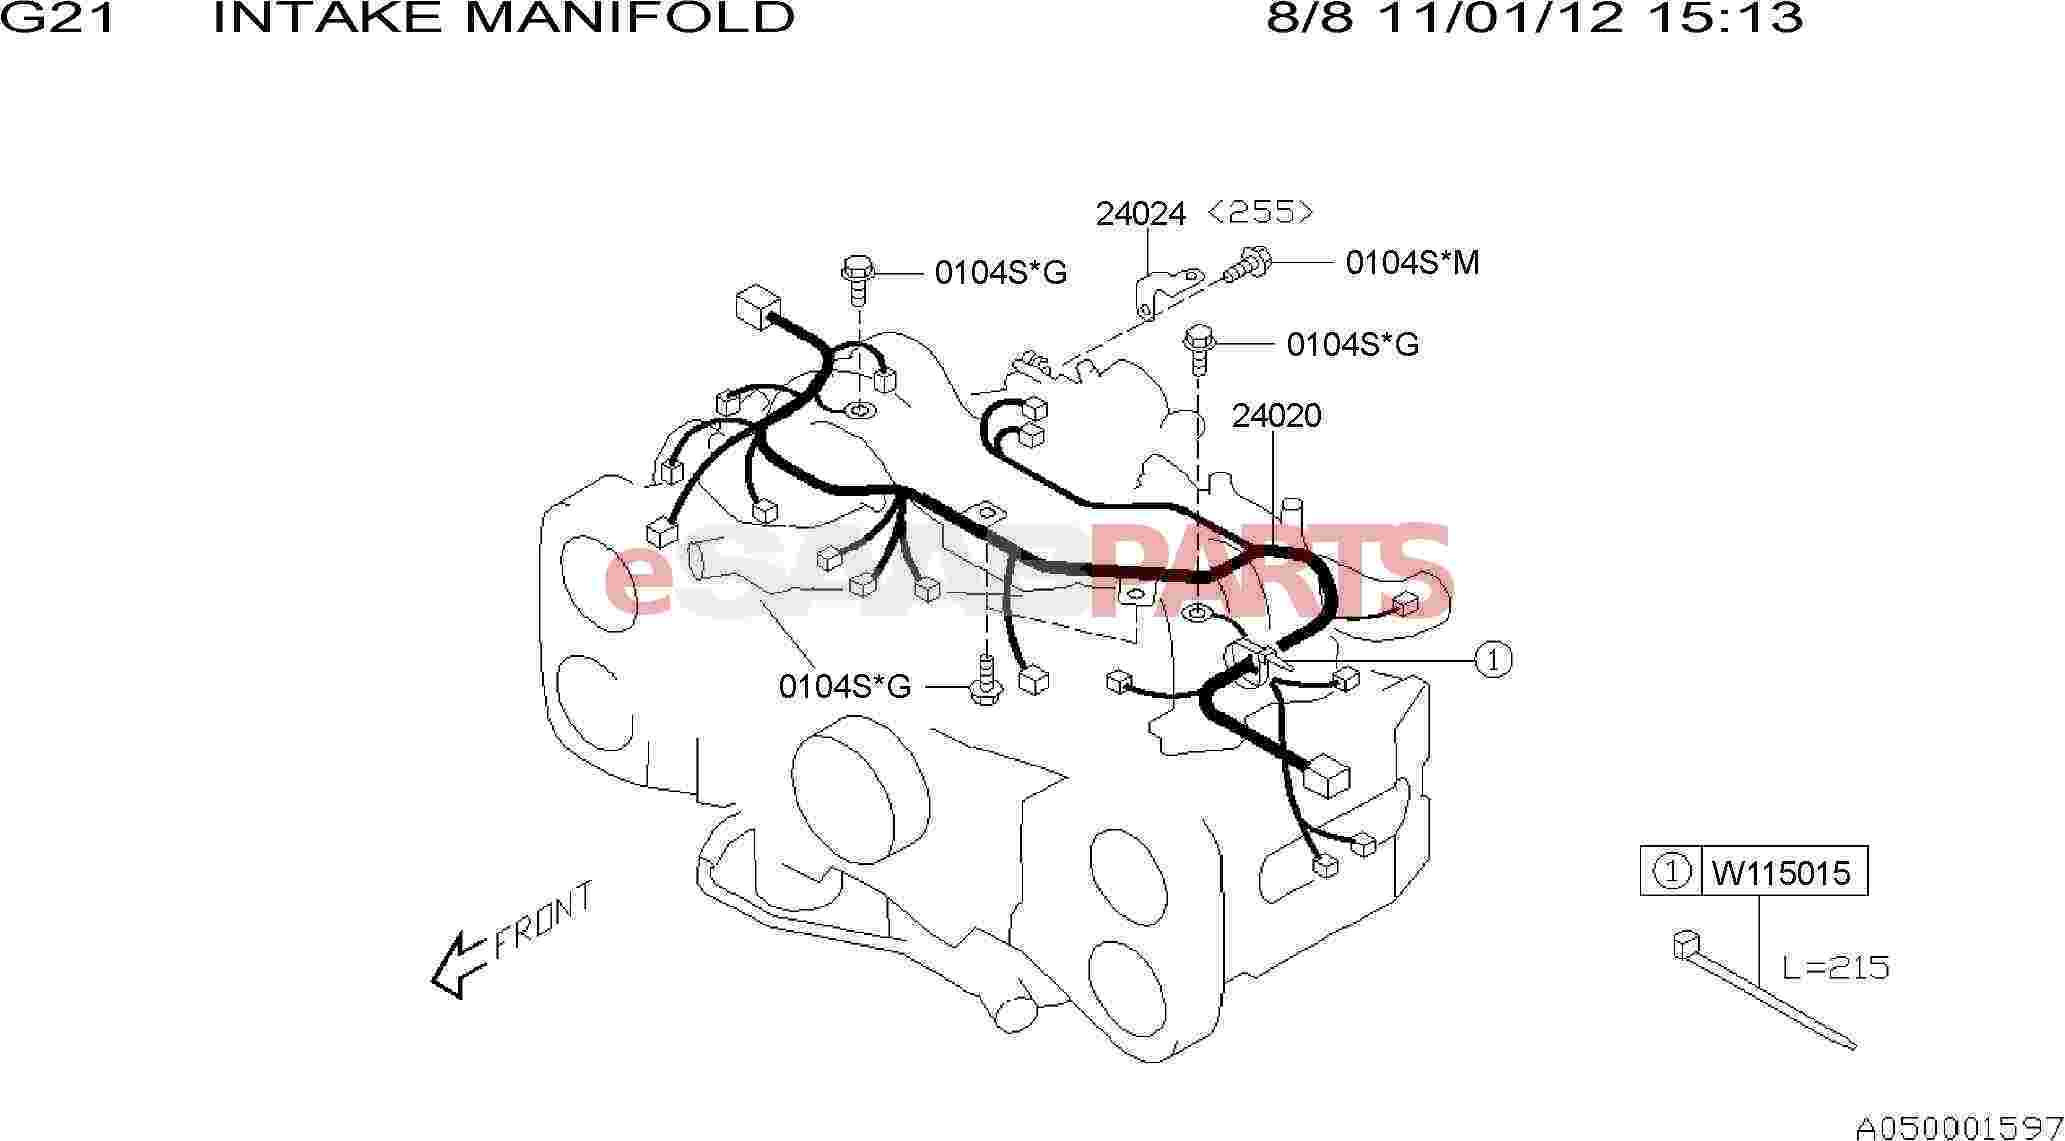 Saab 900 Convertible Top Wiring Diagram Saab 900 Ignition